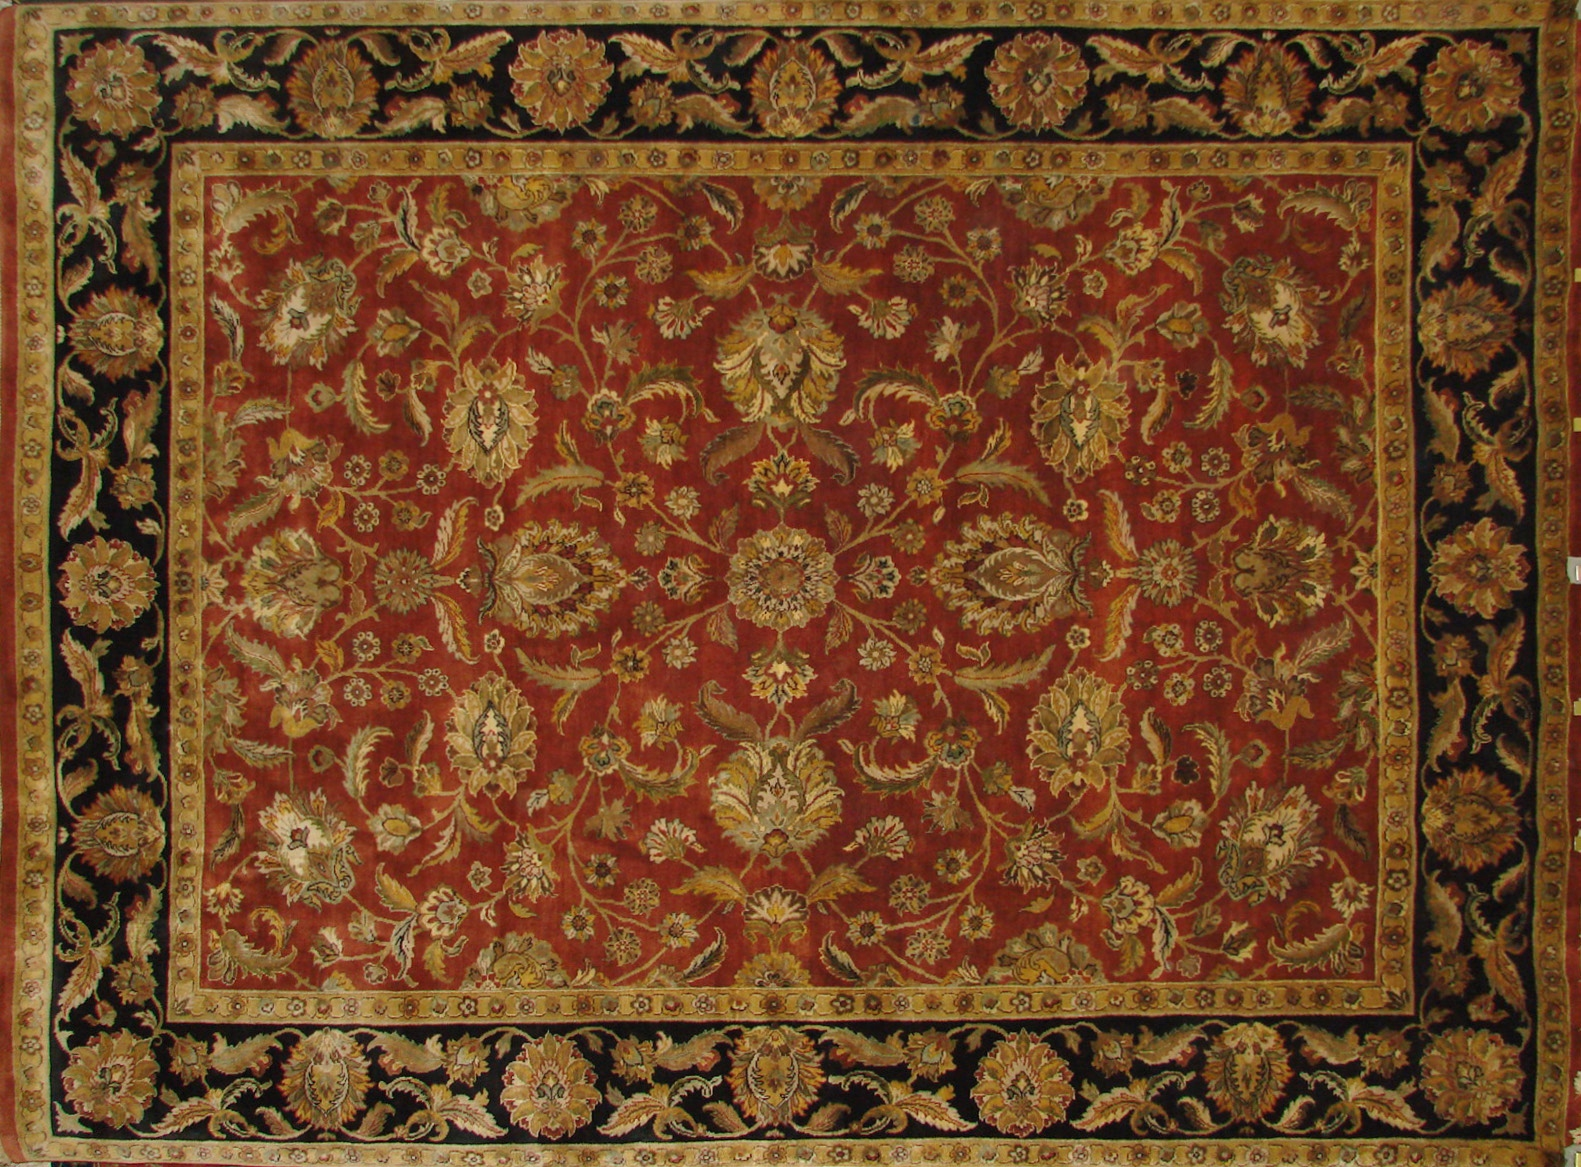 9x12 Jaipur Hand Knotted Wool Area Rug - MR10046